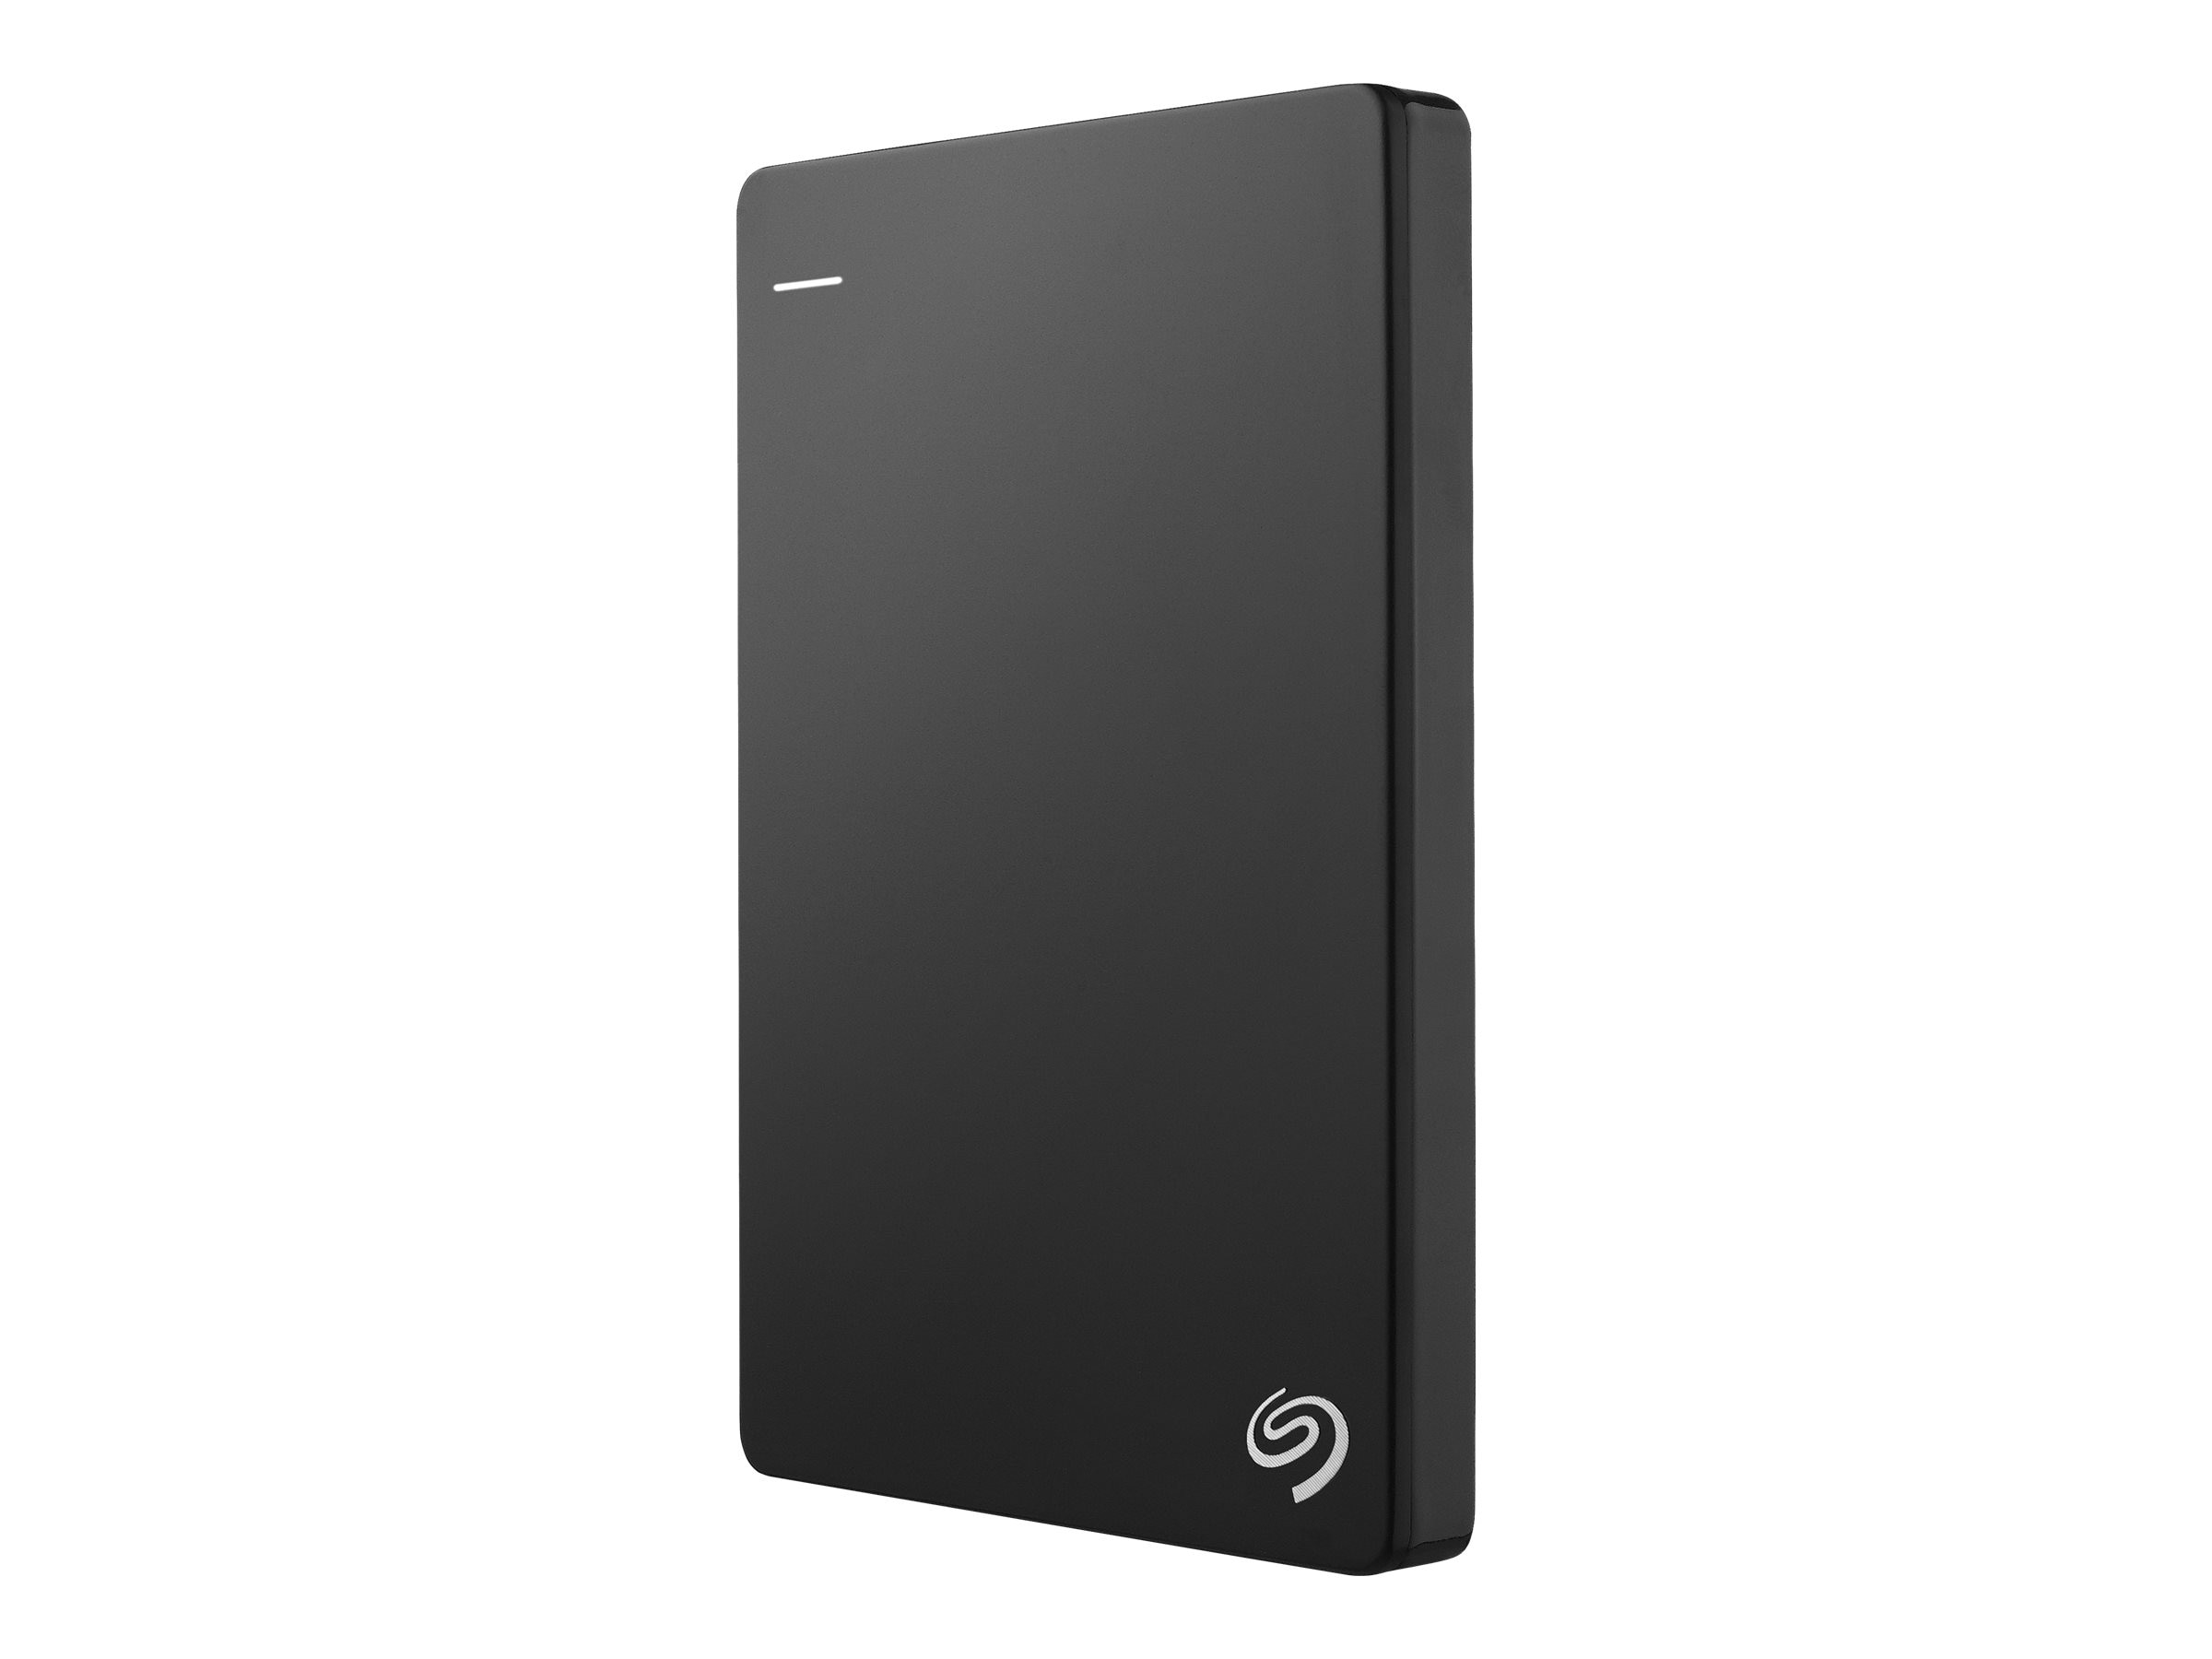 Seagate 2TB Backup Plus USB 3.0 Portable Hard Drive - Black, STDR2000100